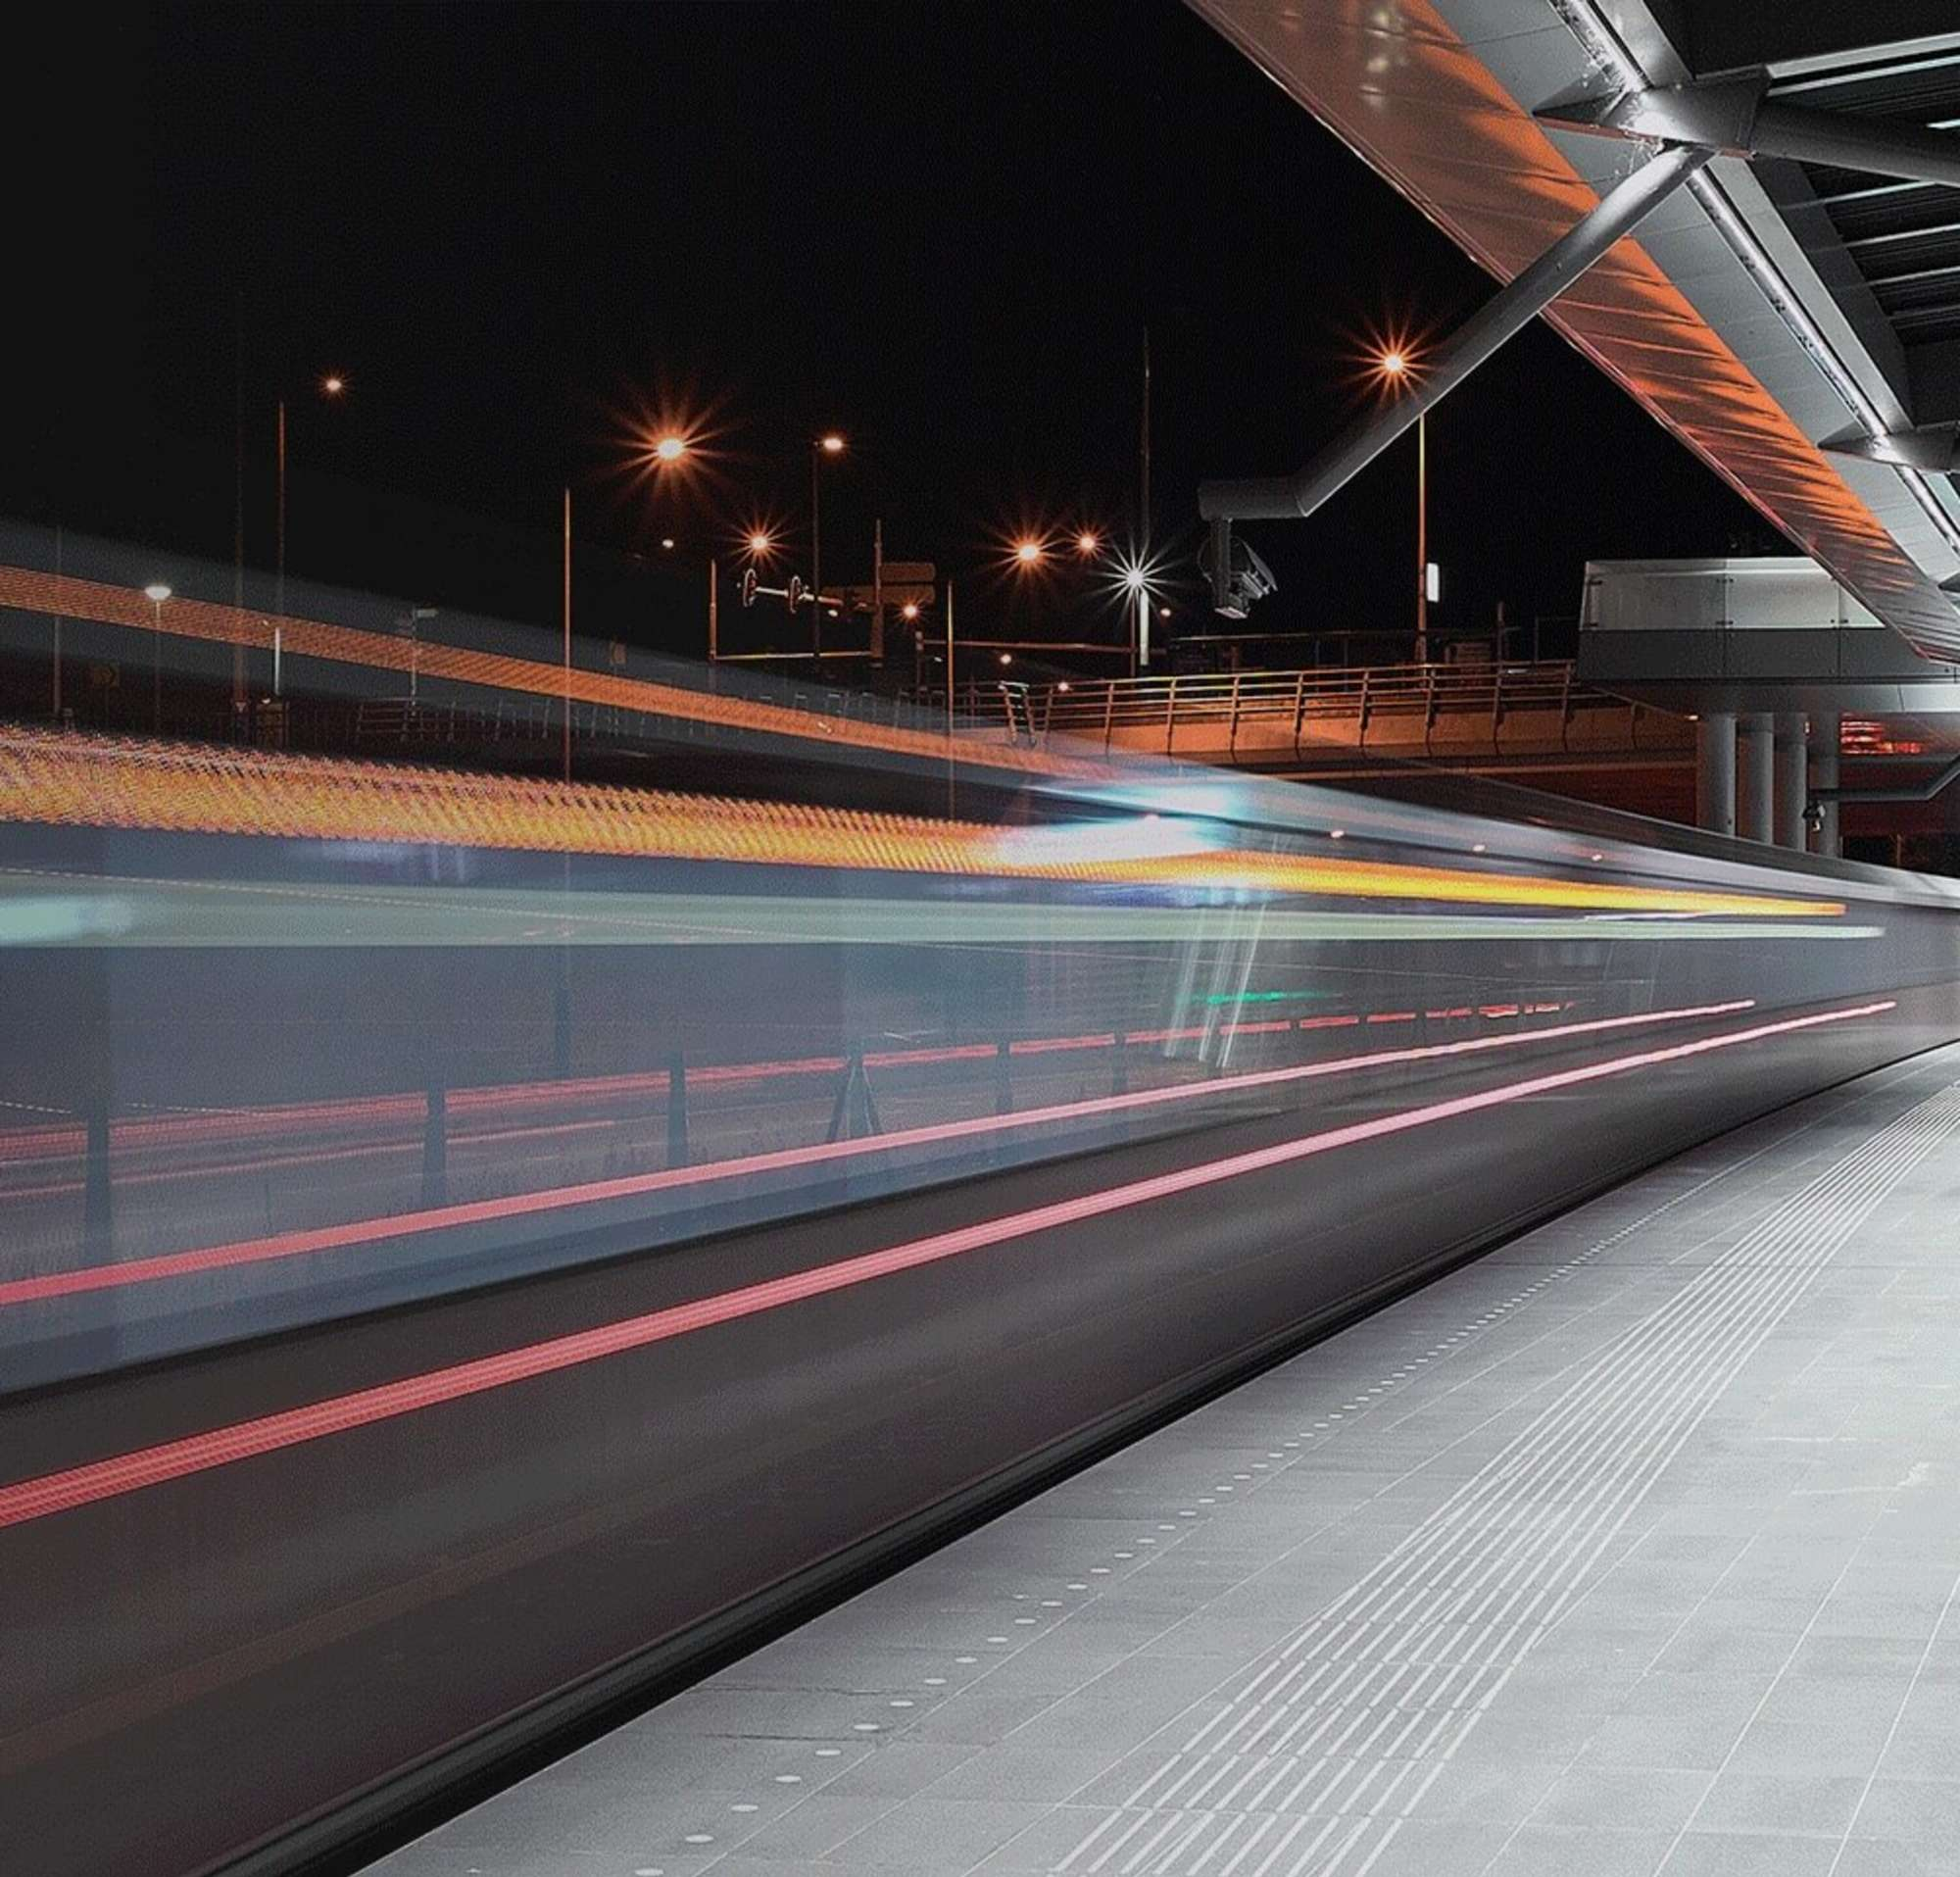 A train moving at high speed through a train station.